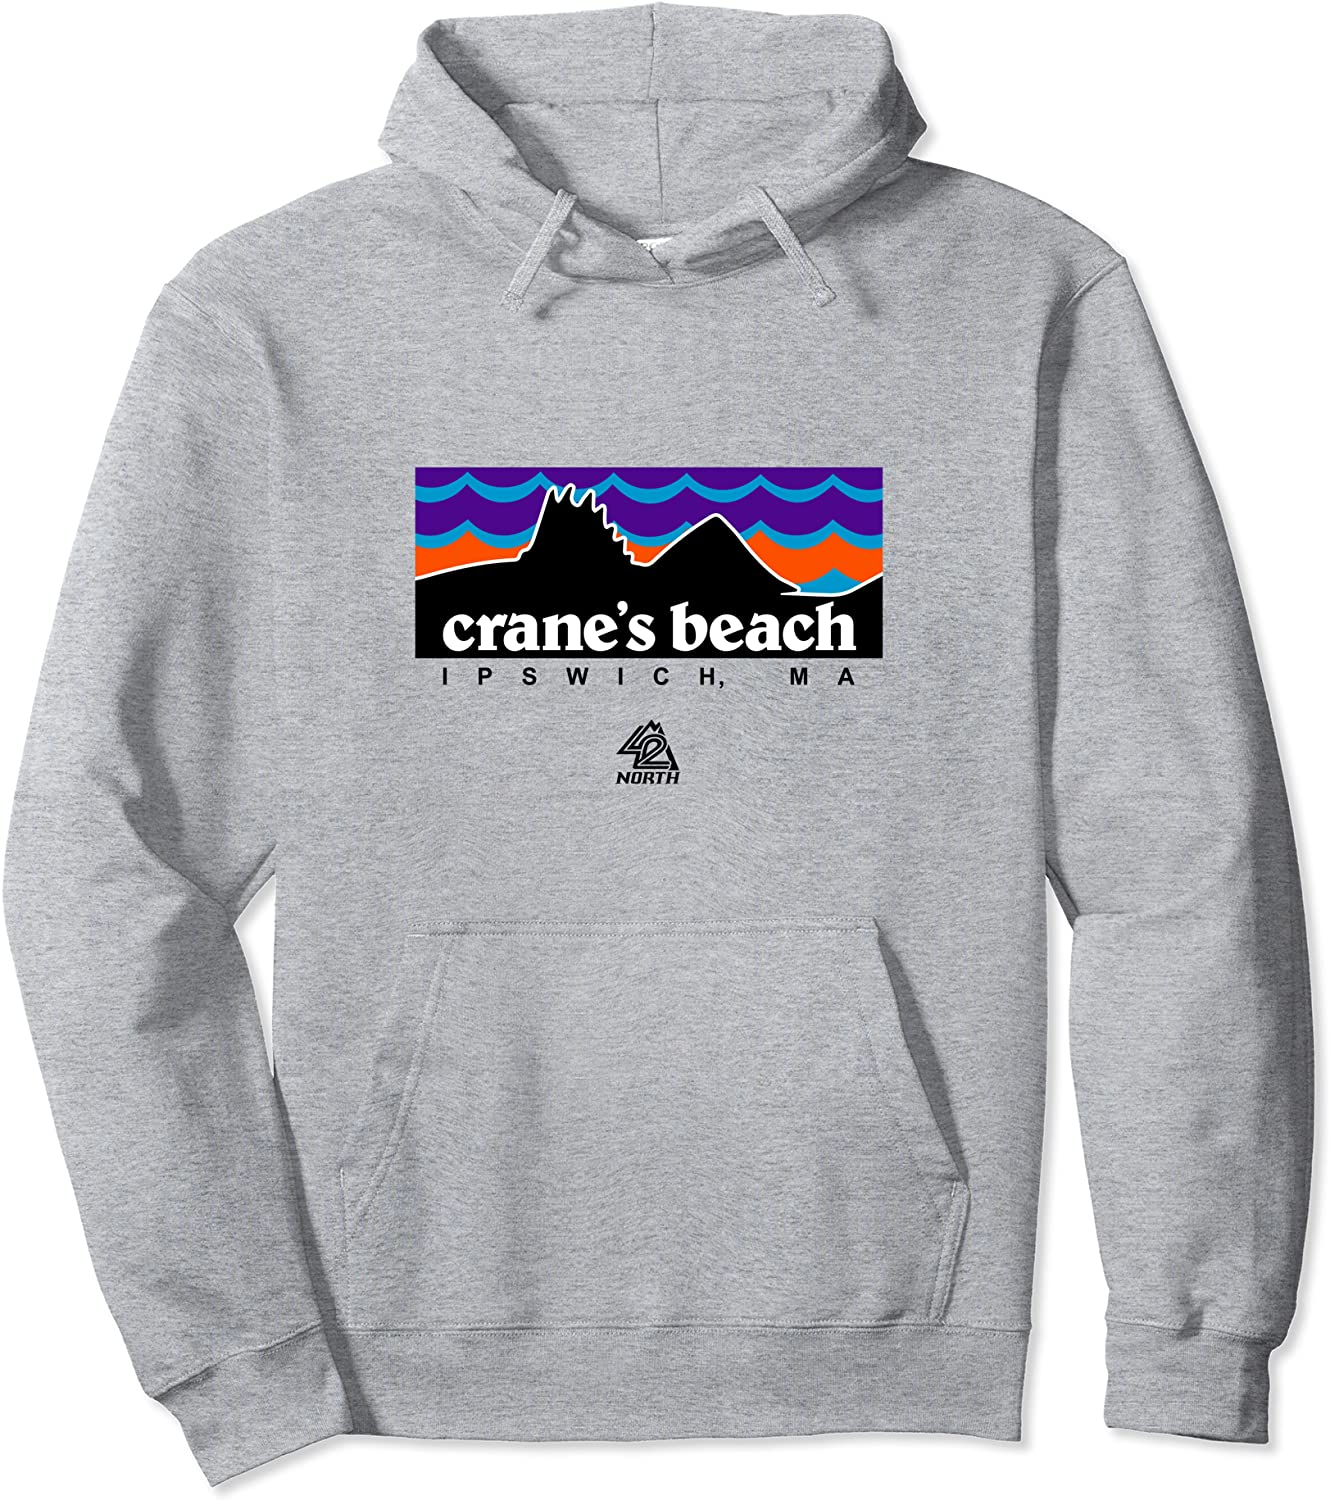 42 NORTH Crane's Beach Pullover Waves Hoodie famous New Shipping Free Shipping